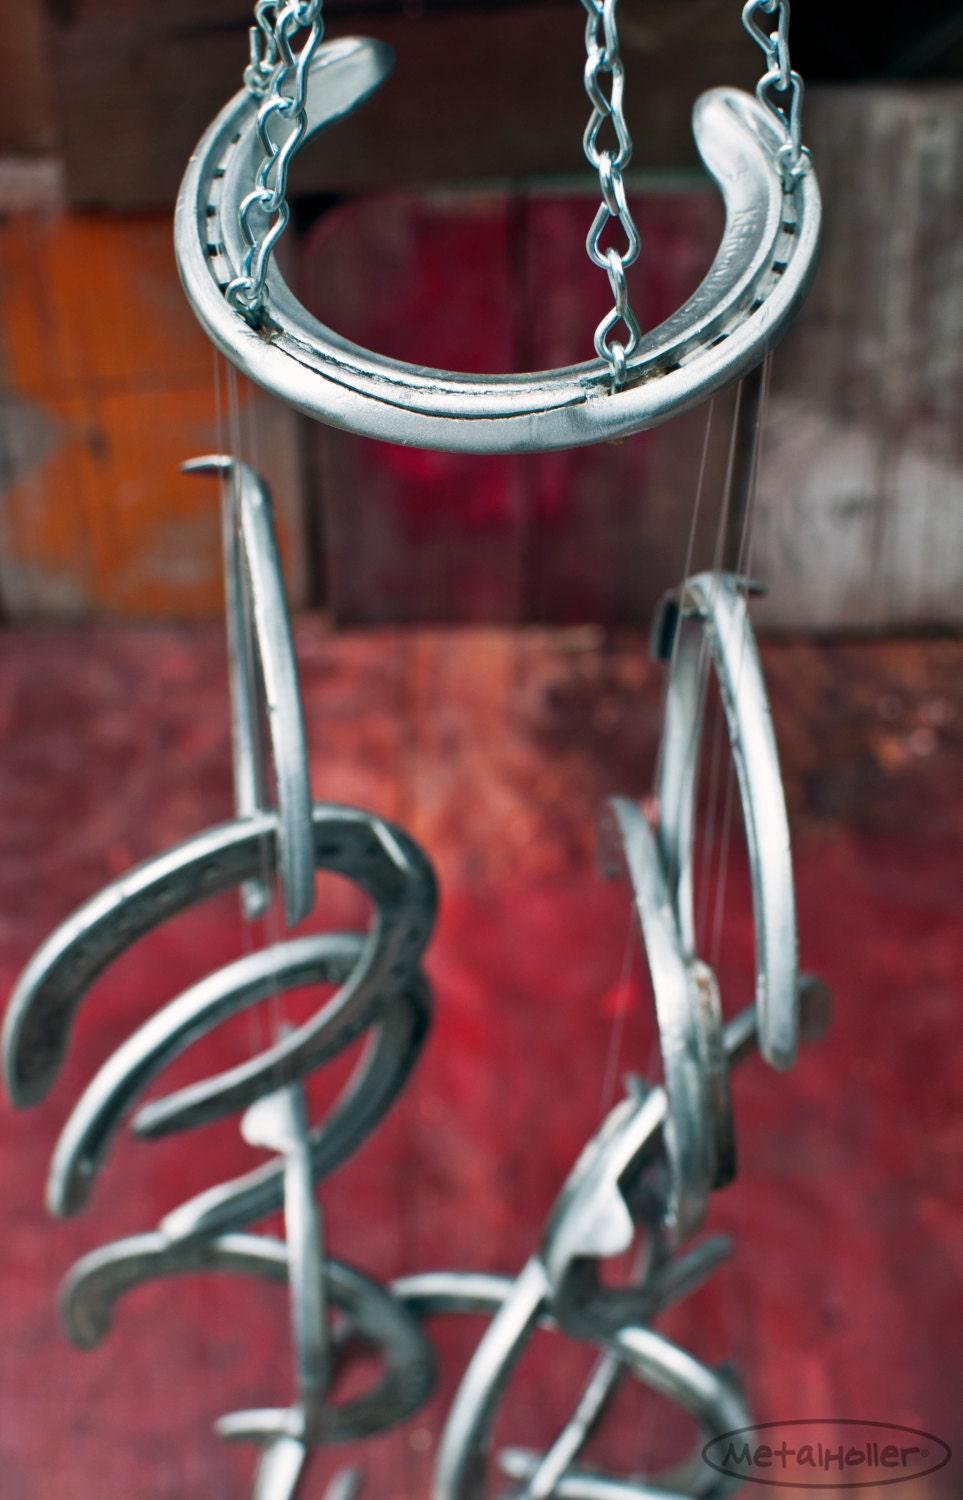 recycled race horseshoe wind chime aluminum horse by